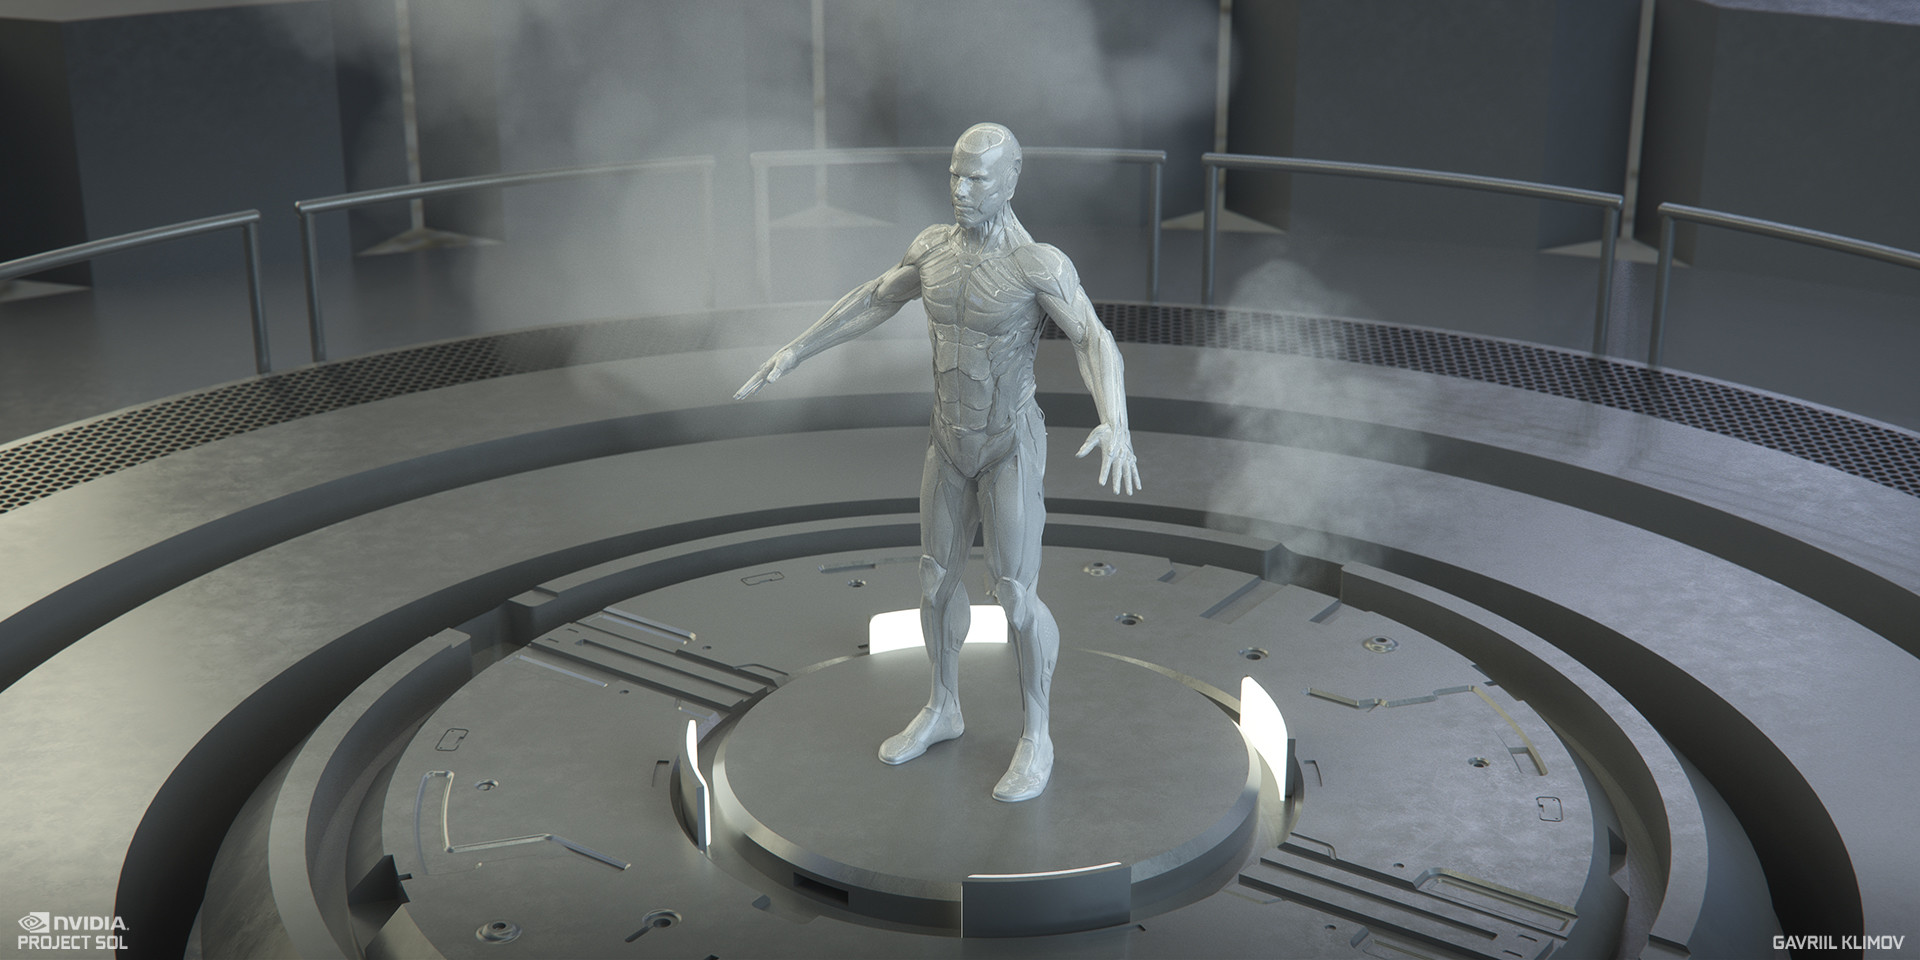 ArtStation - NVIDIA : PROJECT SOL - Art Direction and Design